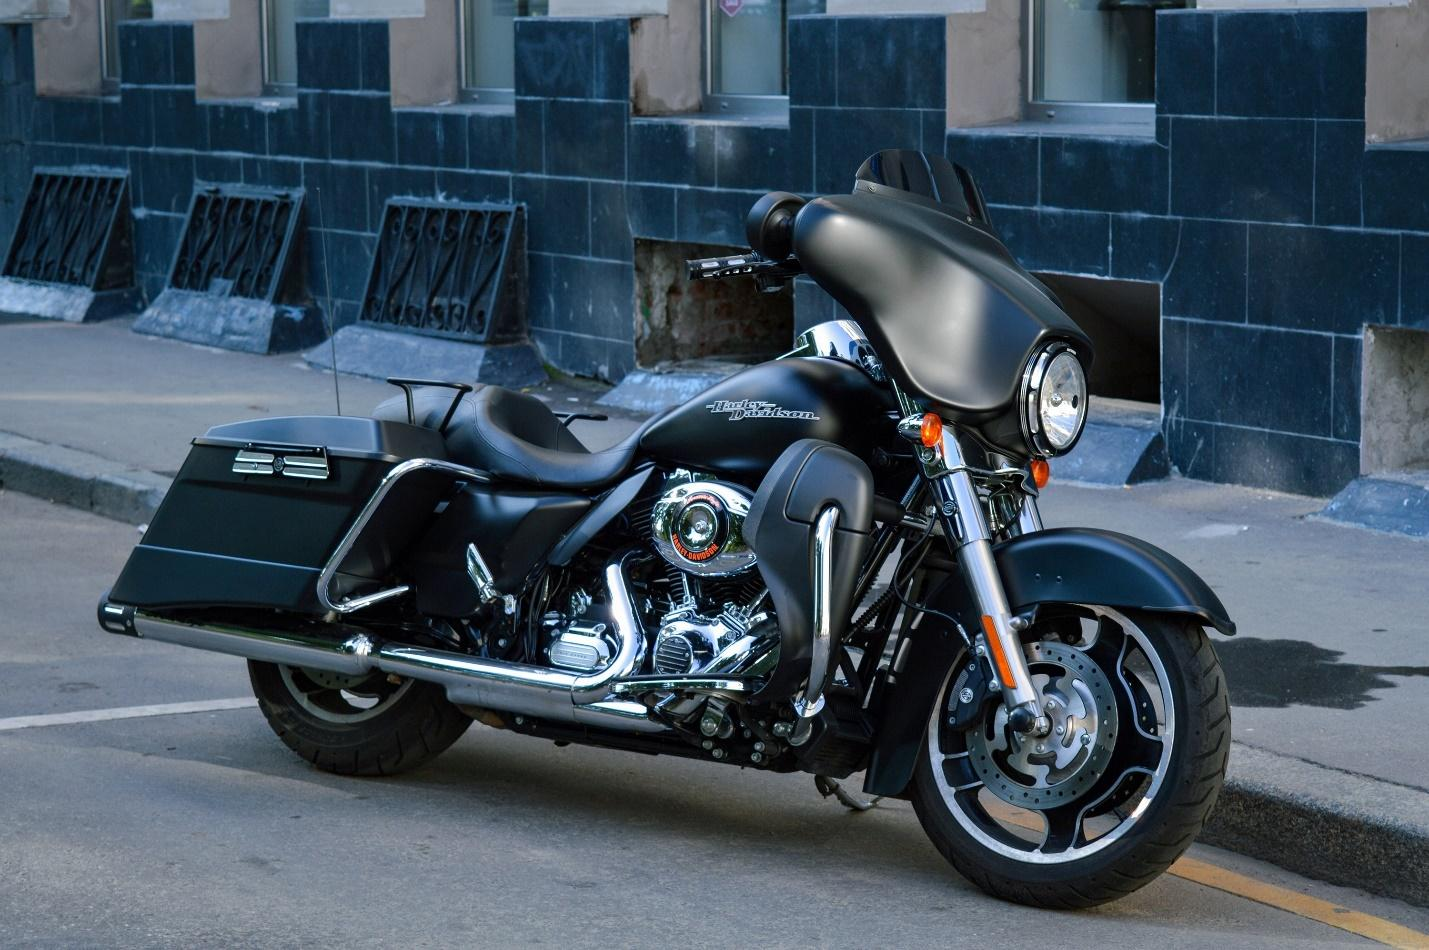 5 car and motorcycle cleaning tips